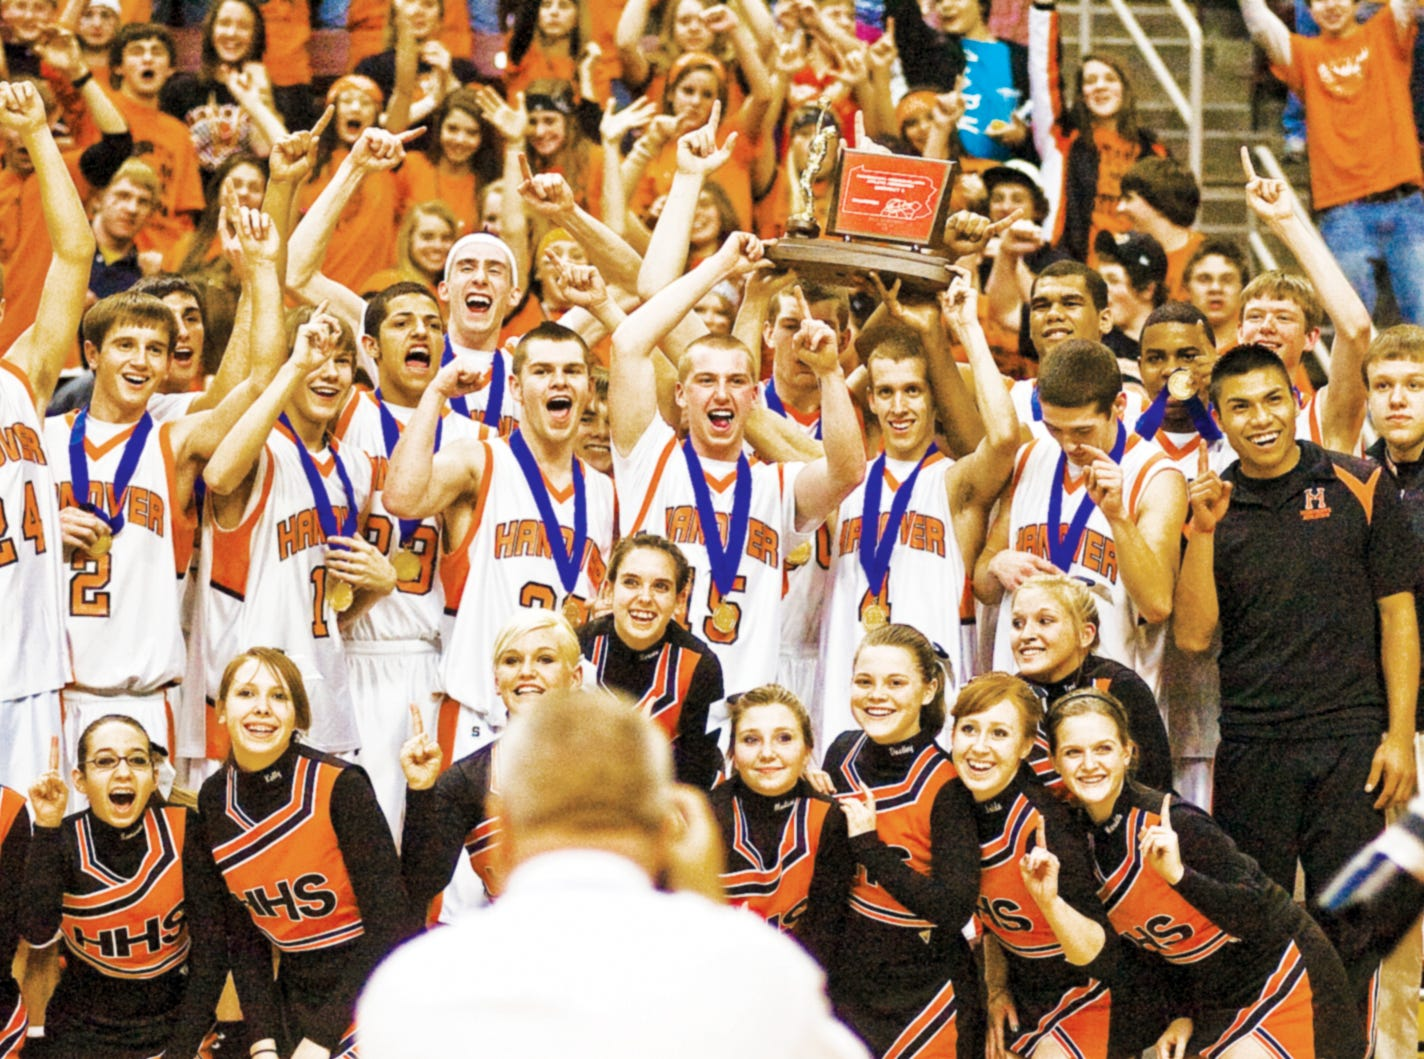 In this file photo from 2011, Hanover celebrates their win during a team photo shoot after besting Delone Catholic 54 to 51 during Friday night's championship game in Hershey.